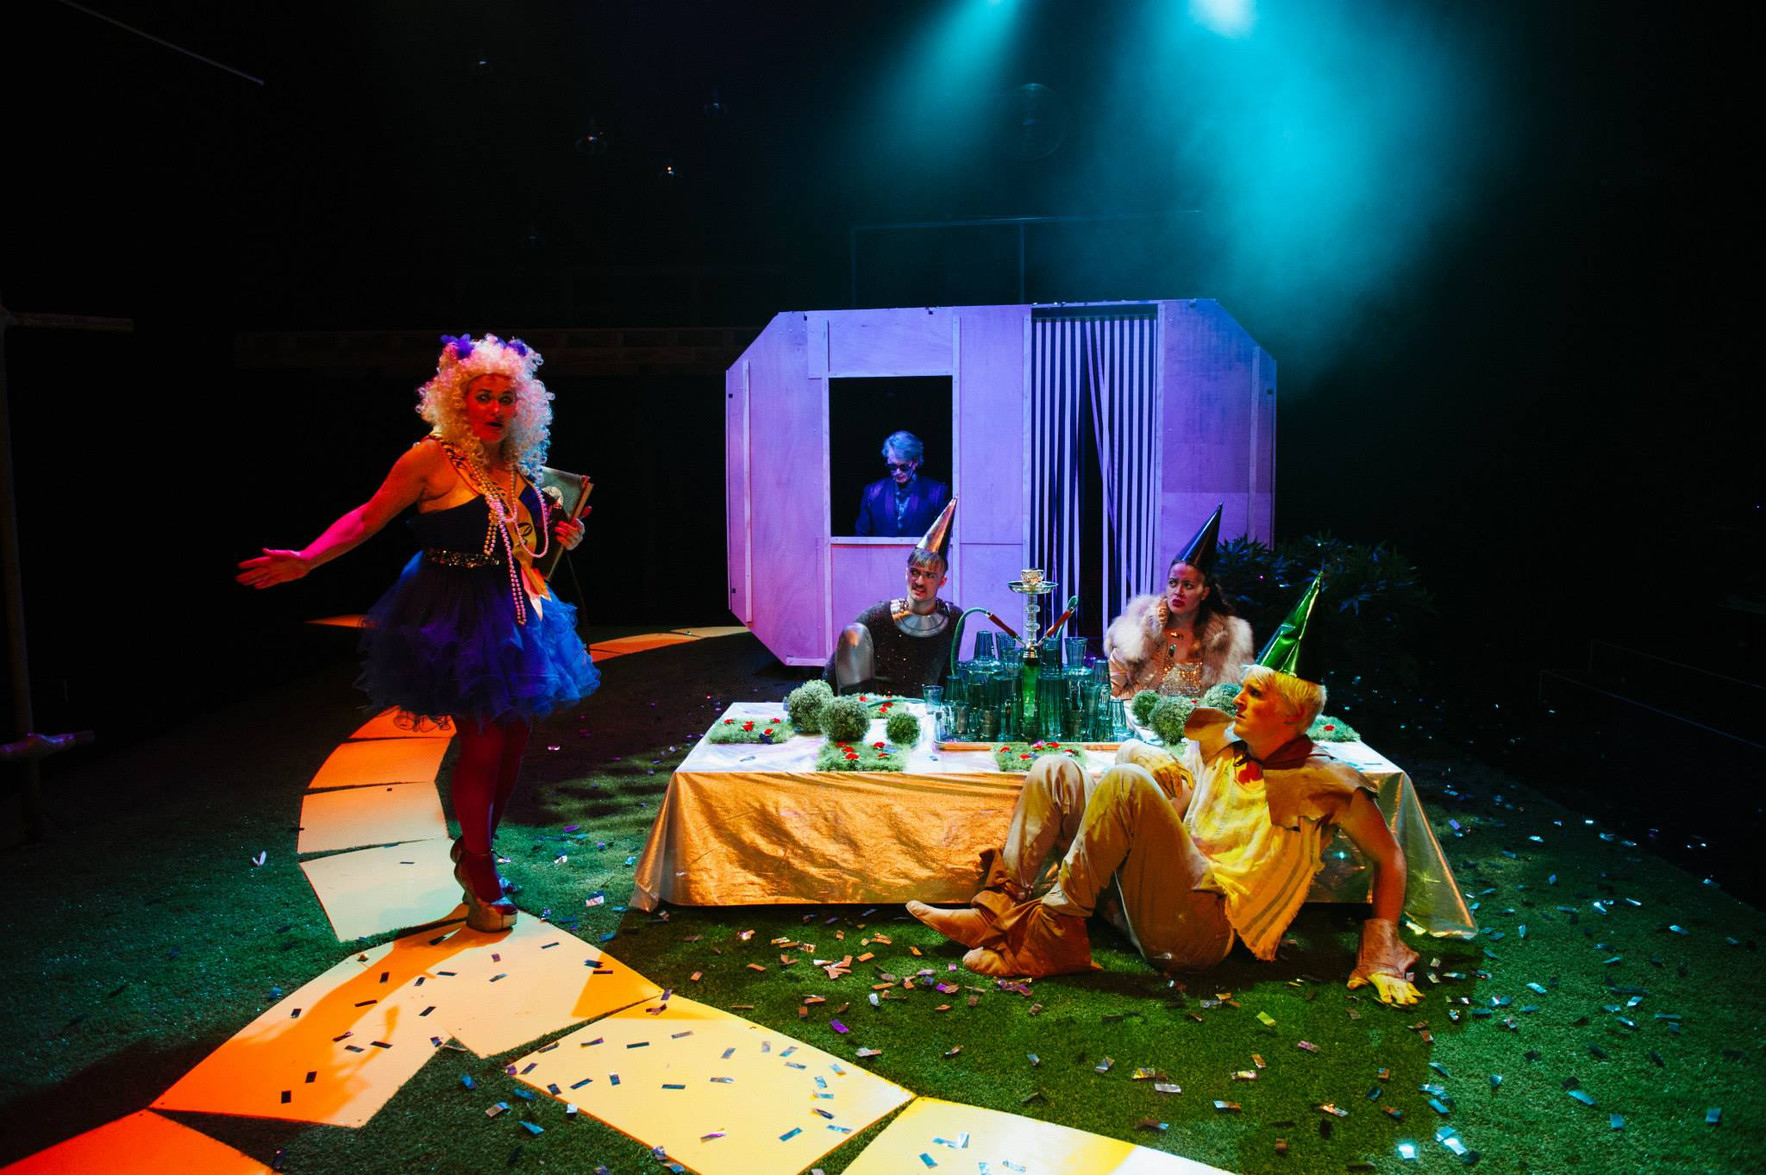 The Wizard of Oz / The Danger Ensemble, La Boîte Theatre Company & Brisbane Festival